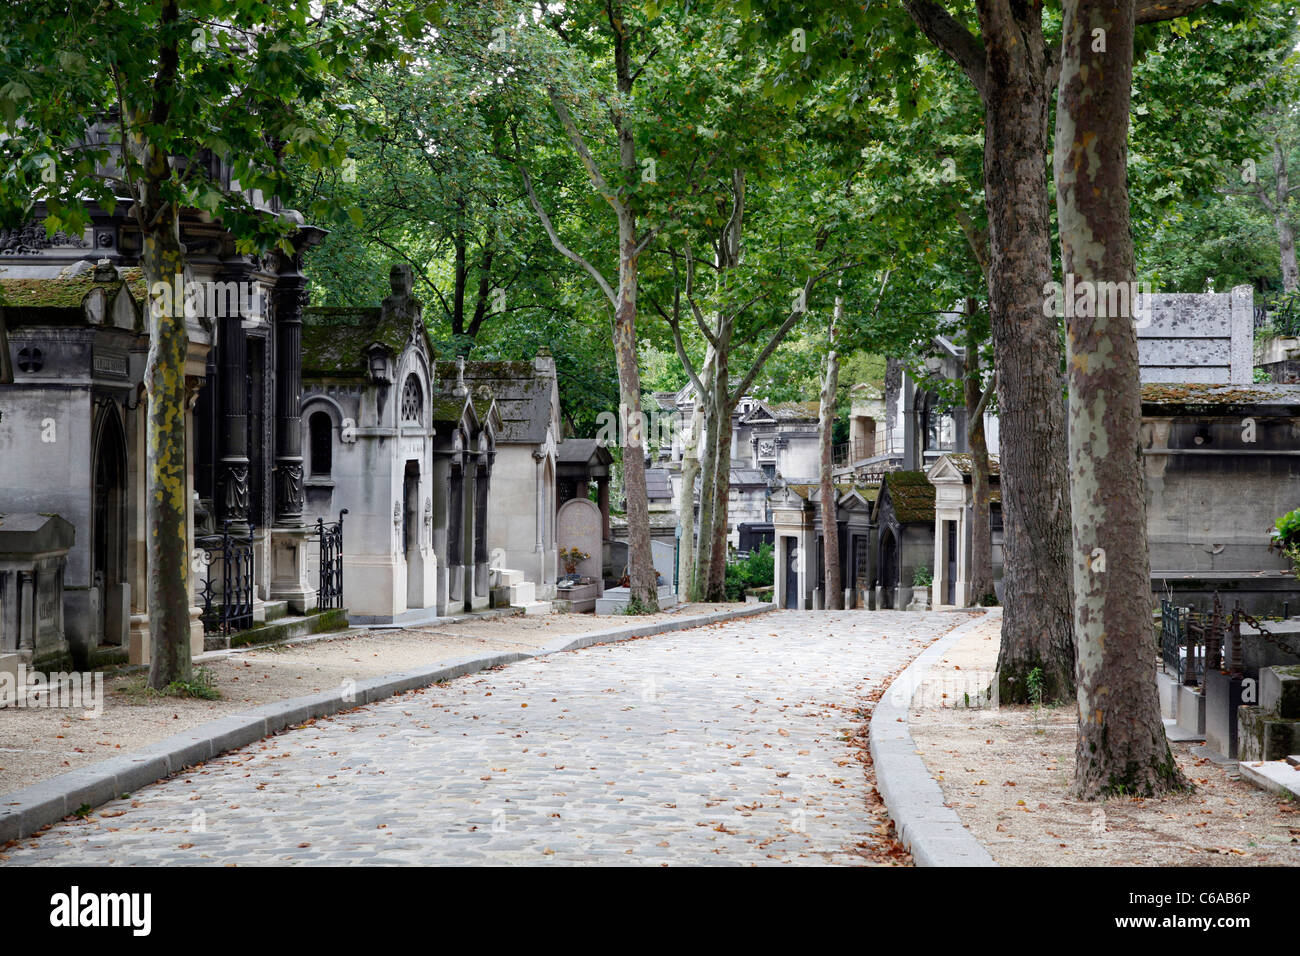 Mausoleums and graves in the graveyard at the Pere Lachaise cemetery in Paris, France Stock Photo